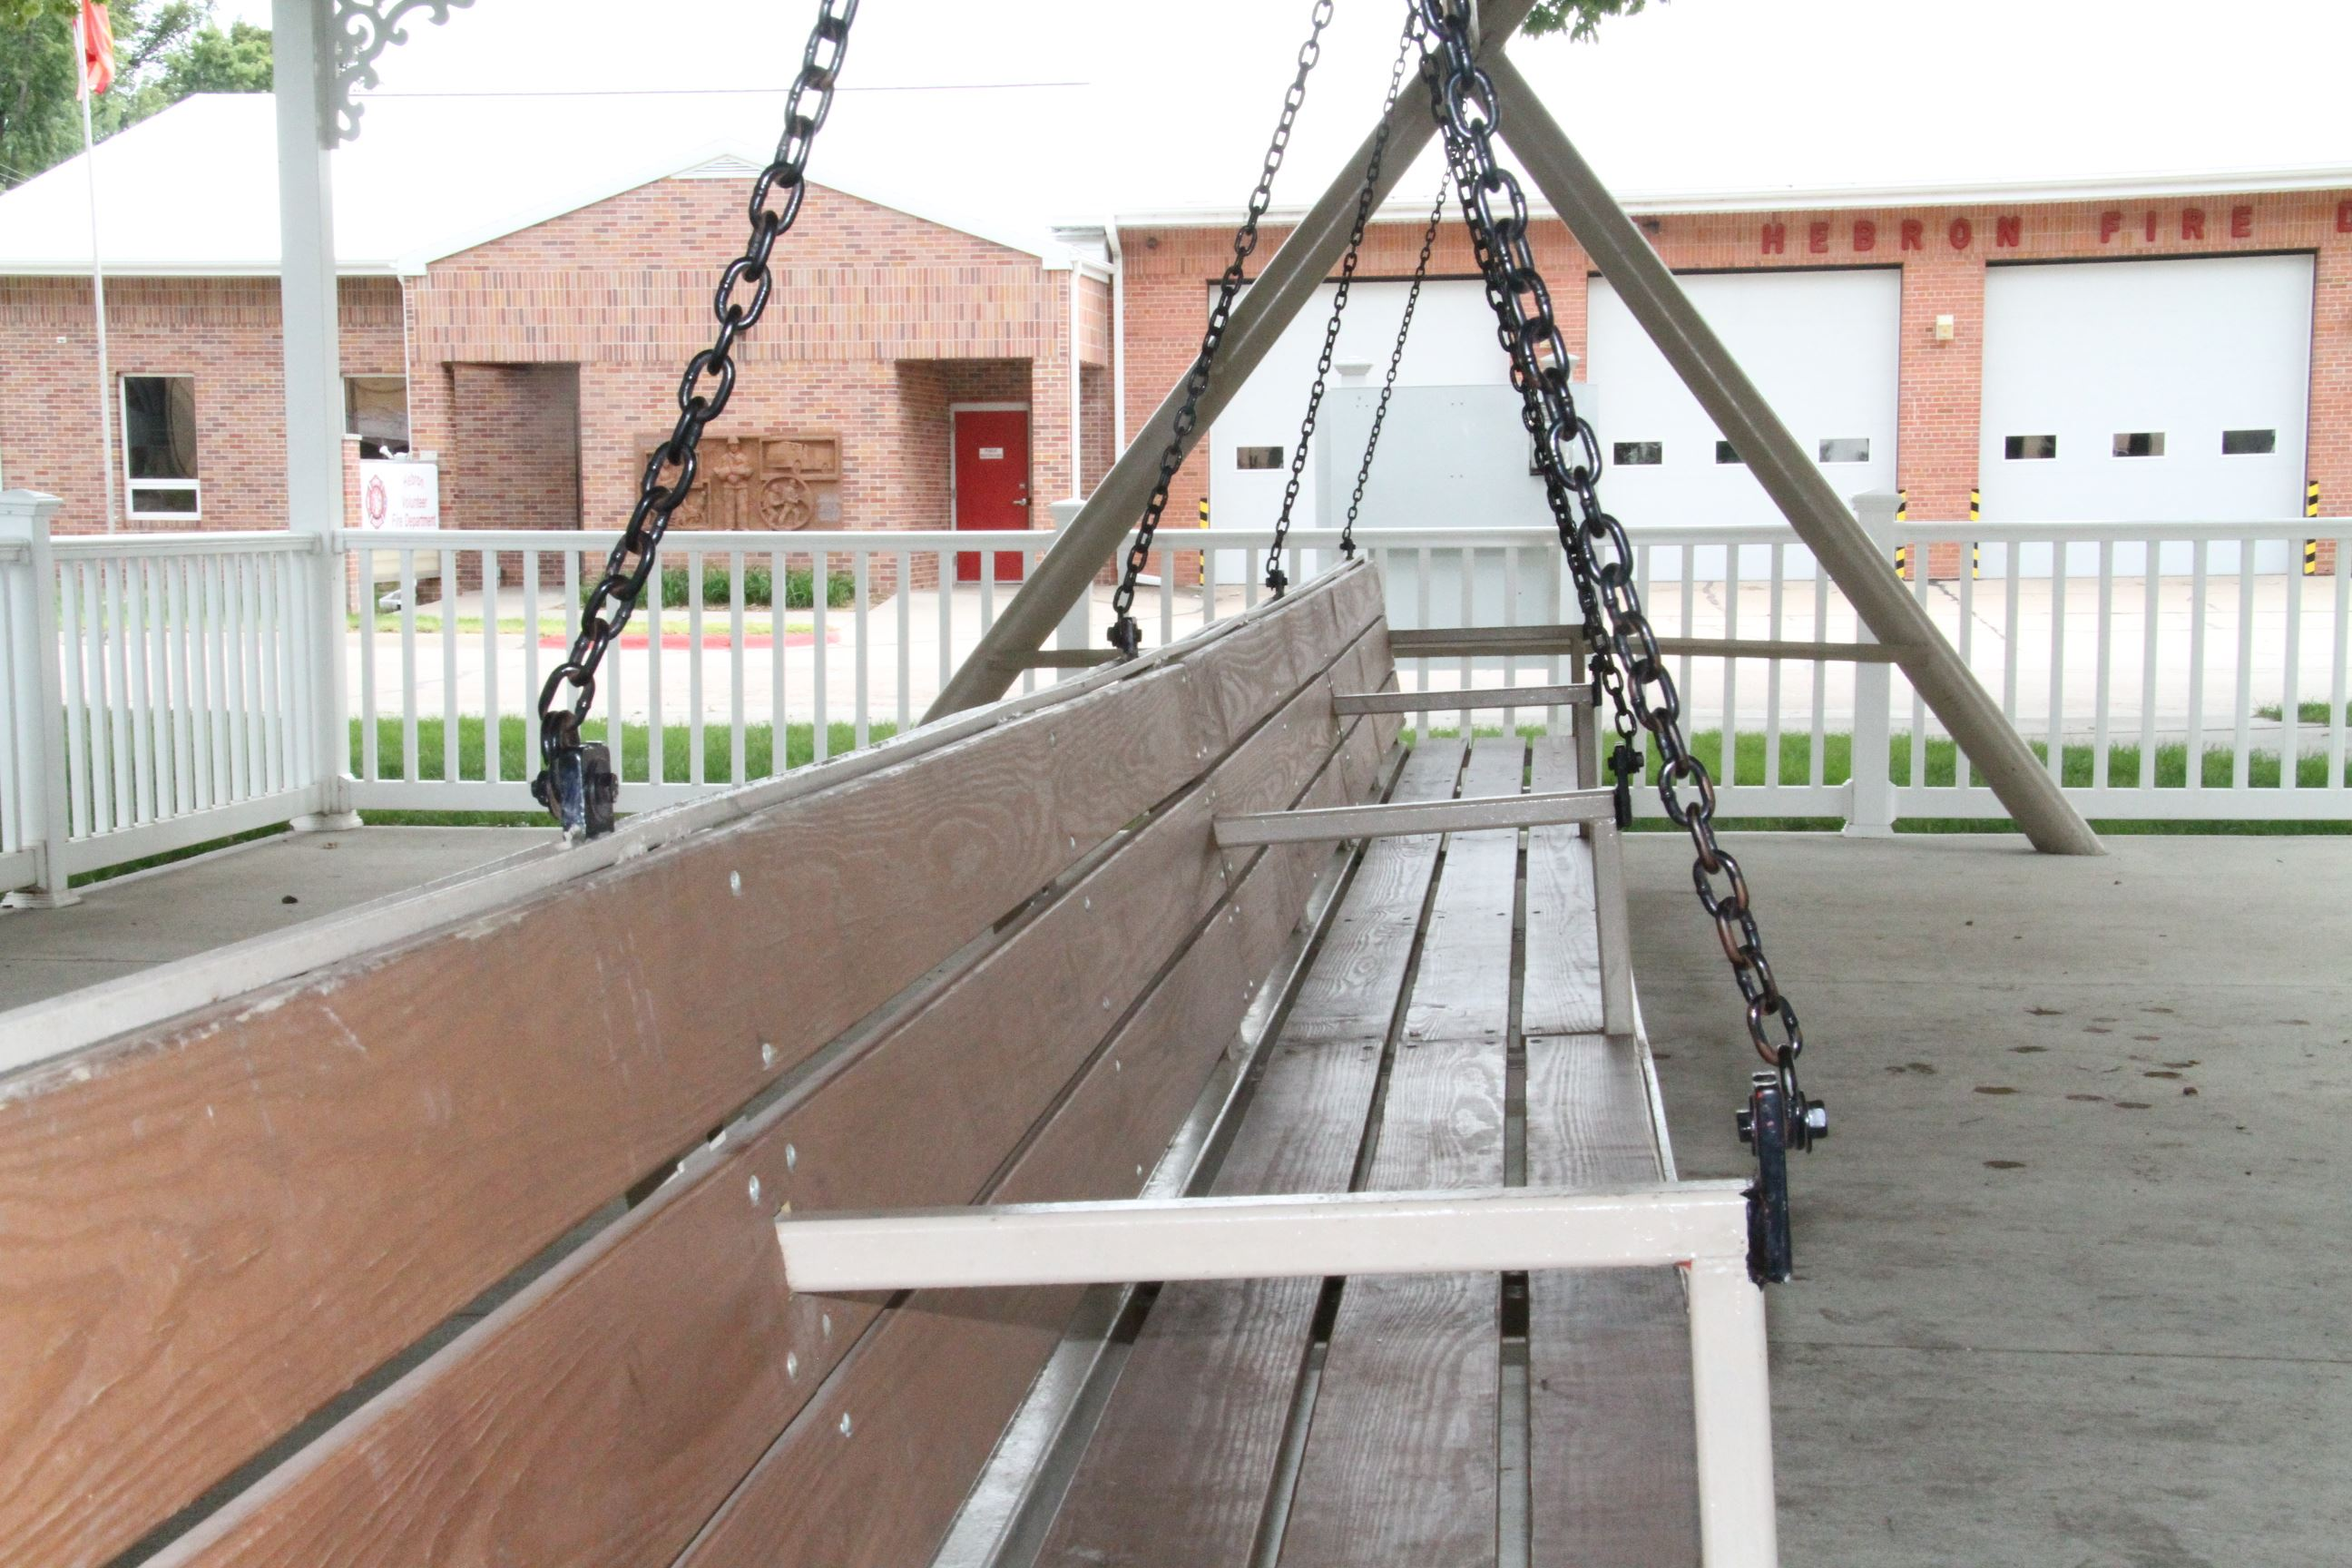 A long wooden porch swing hung by chains.